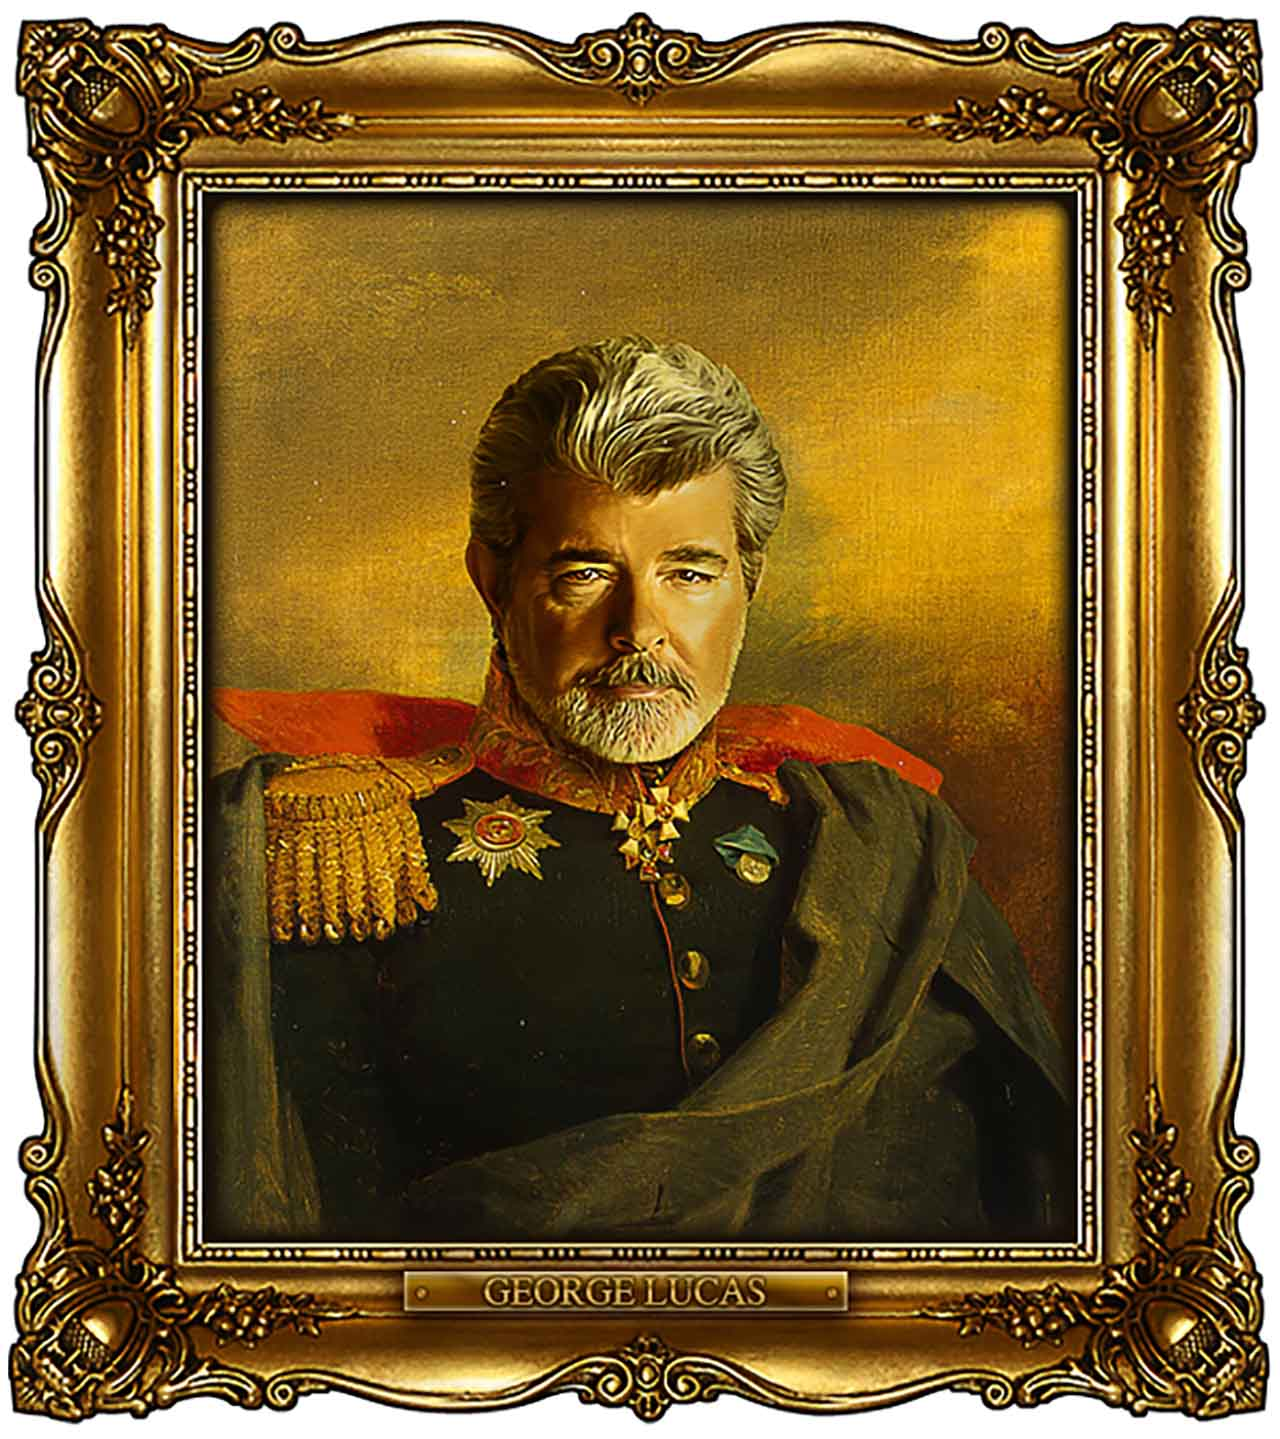 Artist Turns Famous Actors Into Russian Generals - George Lucas